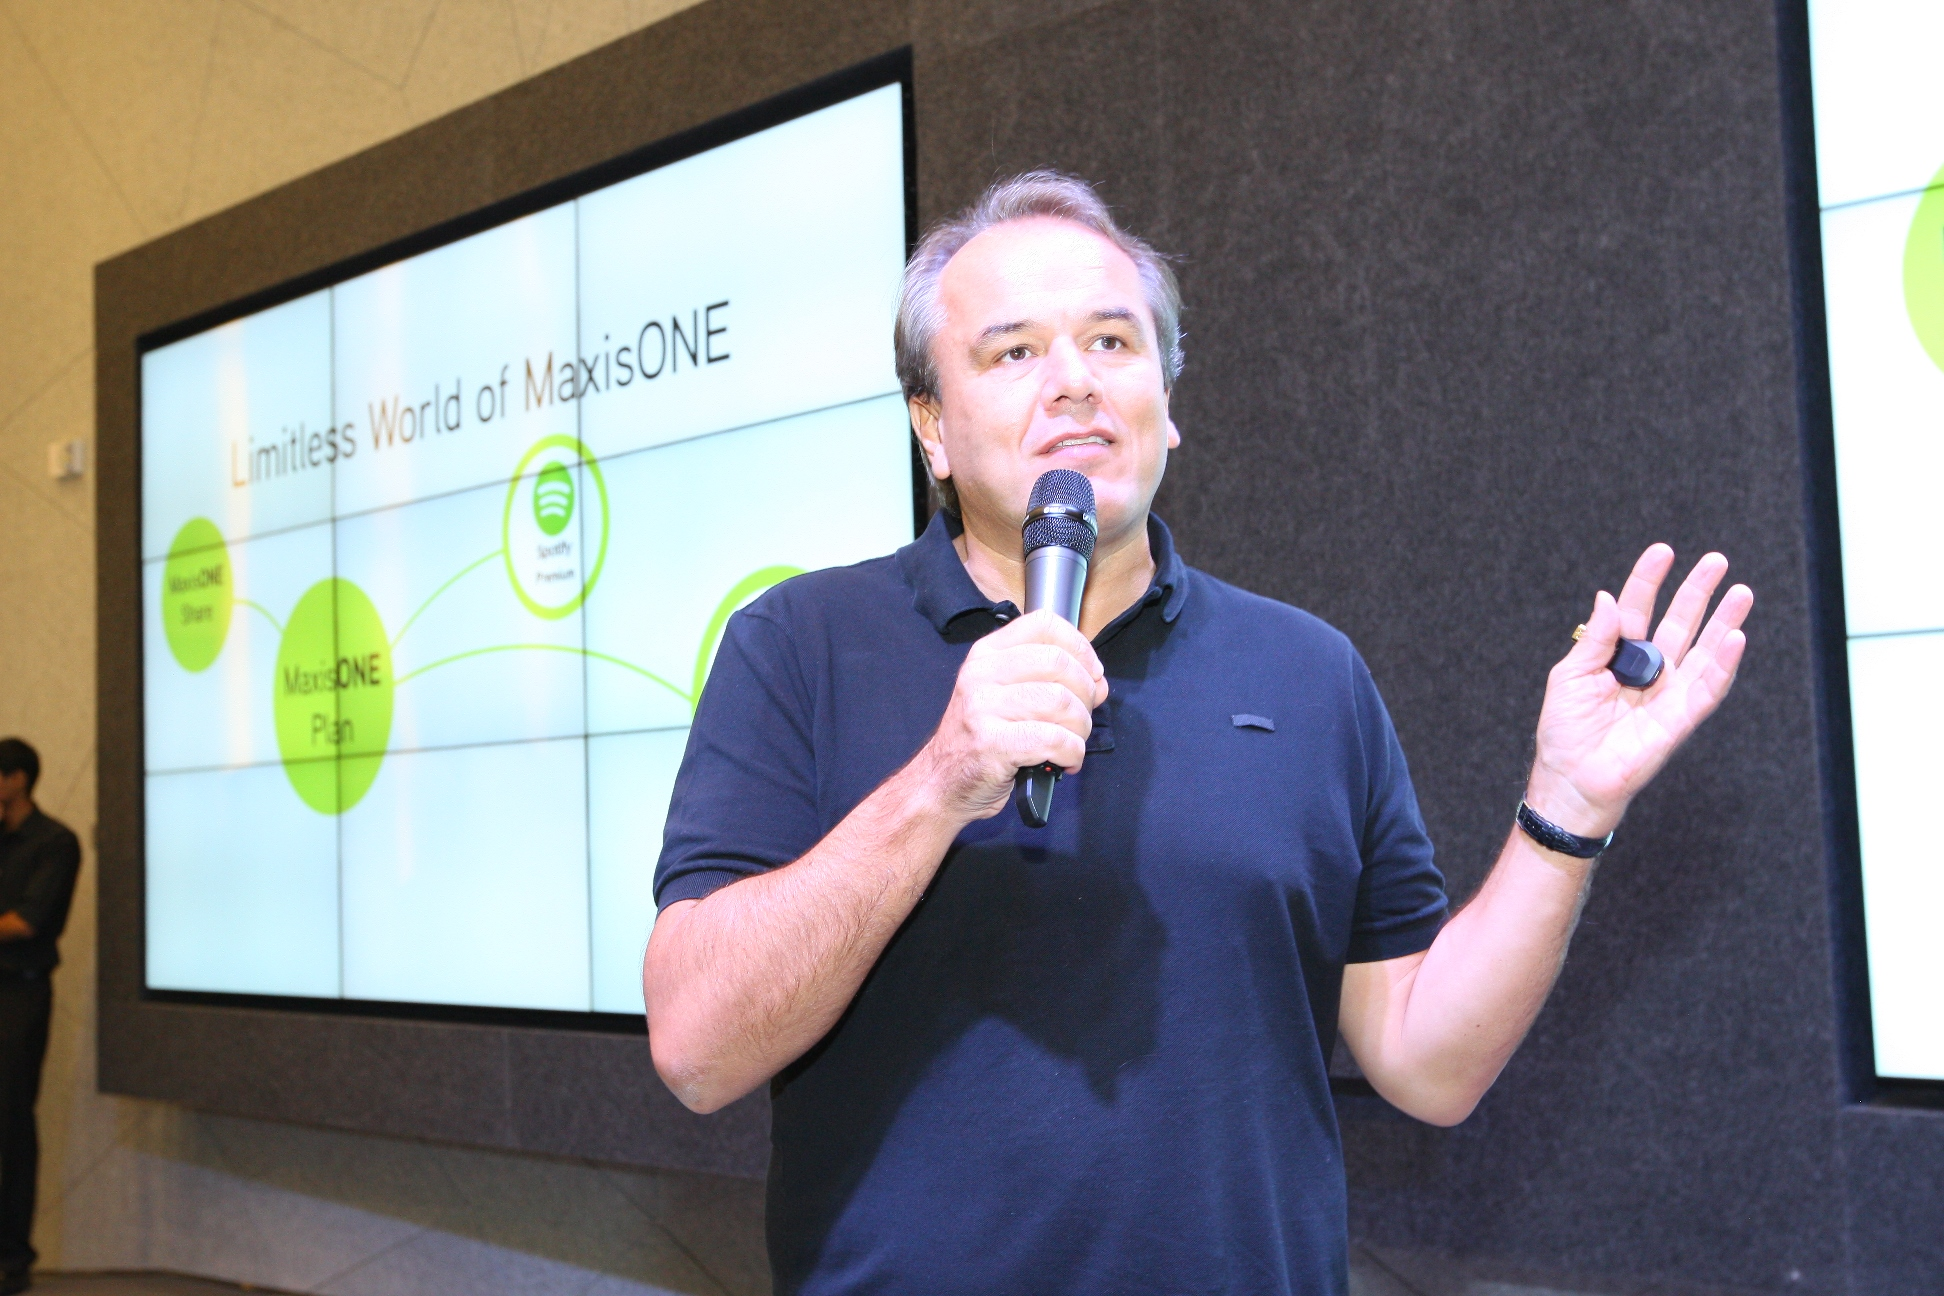 Morten Lundal, Maxis' Chief Executive Officer, giving an introduction to the Limitless World of MaxisONE during the showcase event earlier today.